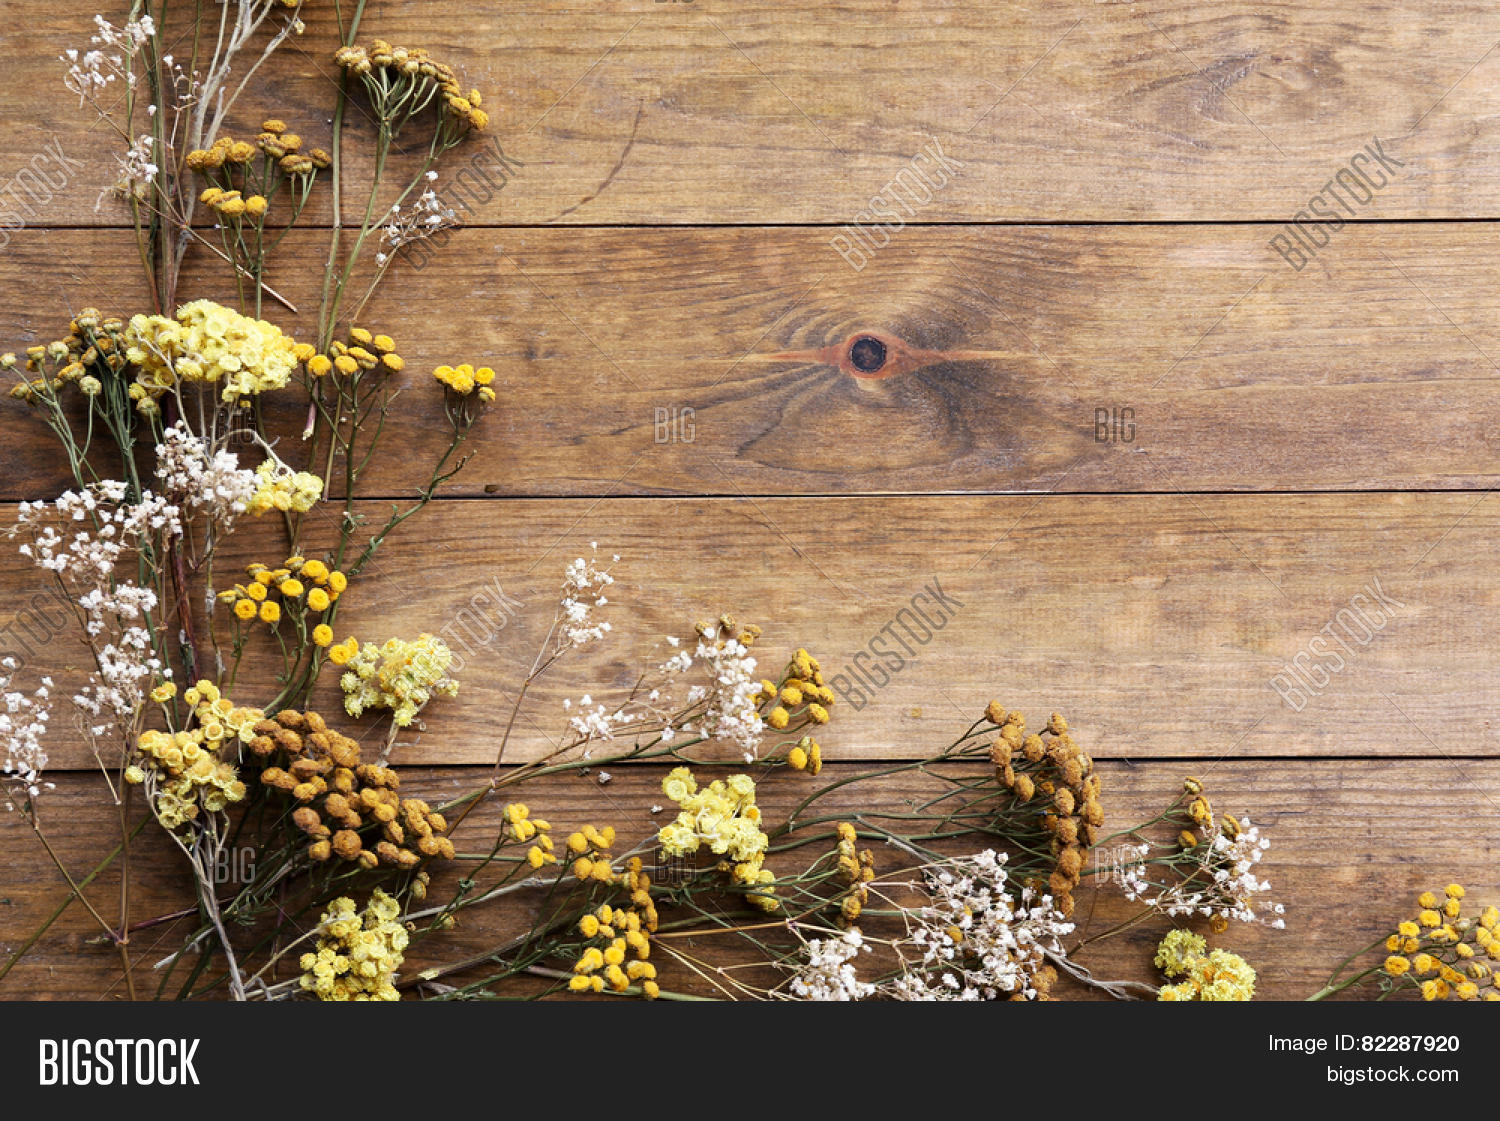 Dried Flowers On Image Photo Free Trial Bigstock